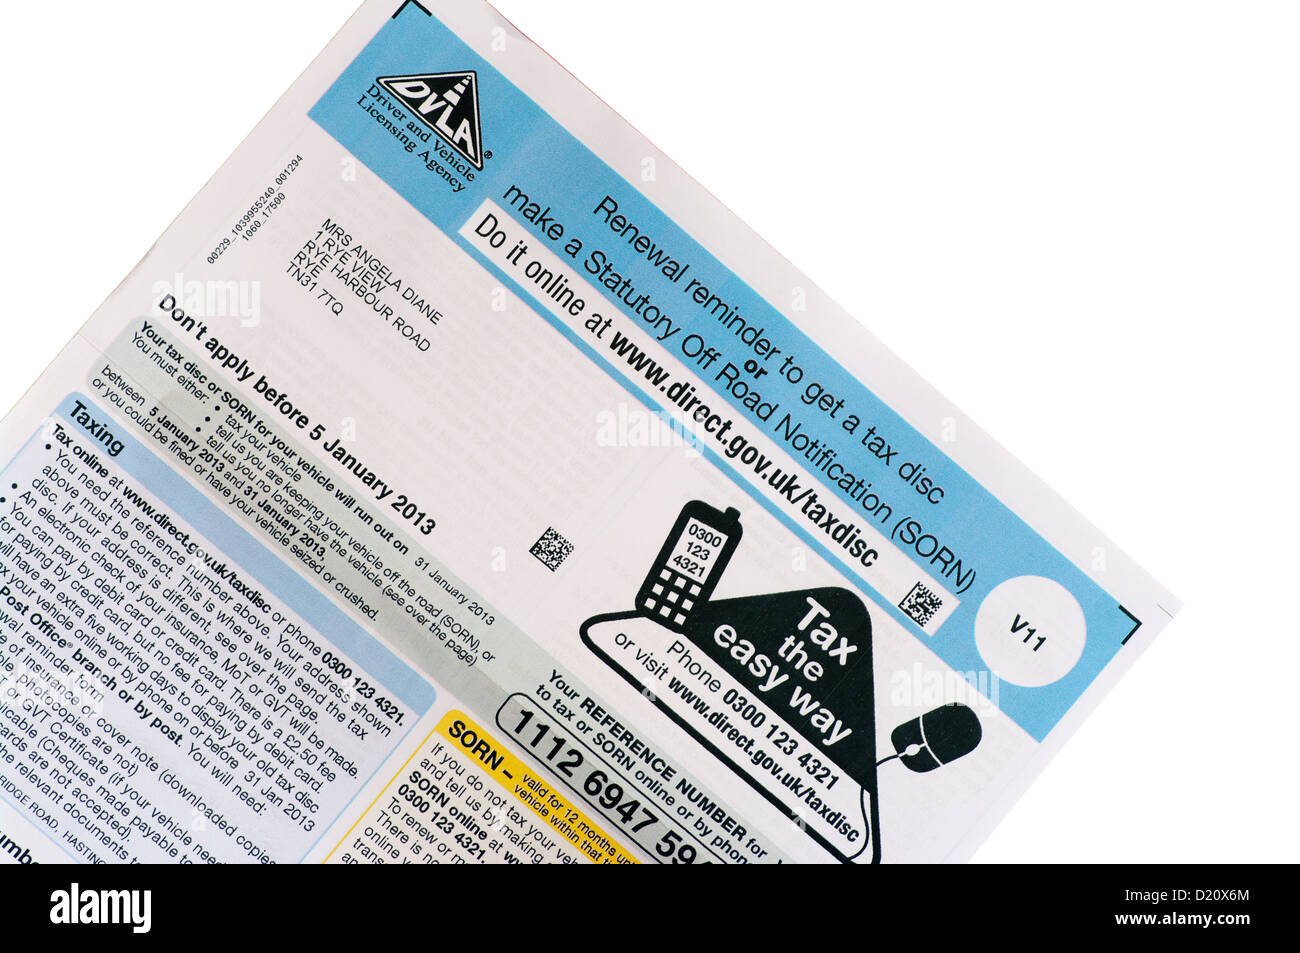 Car Tax Disc Renewal Reminder Form UK - Stock Image